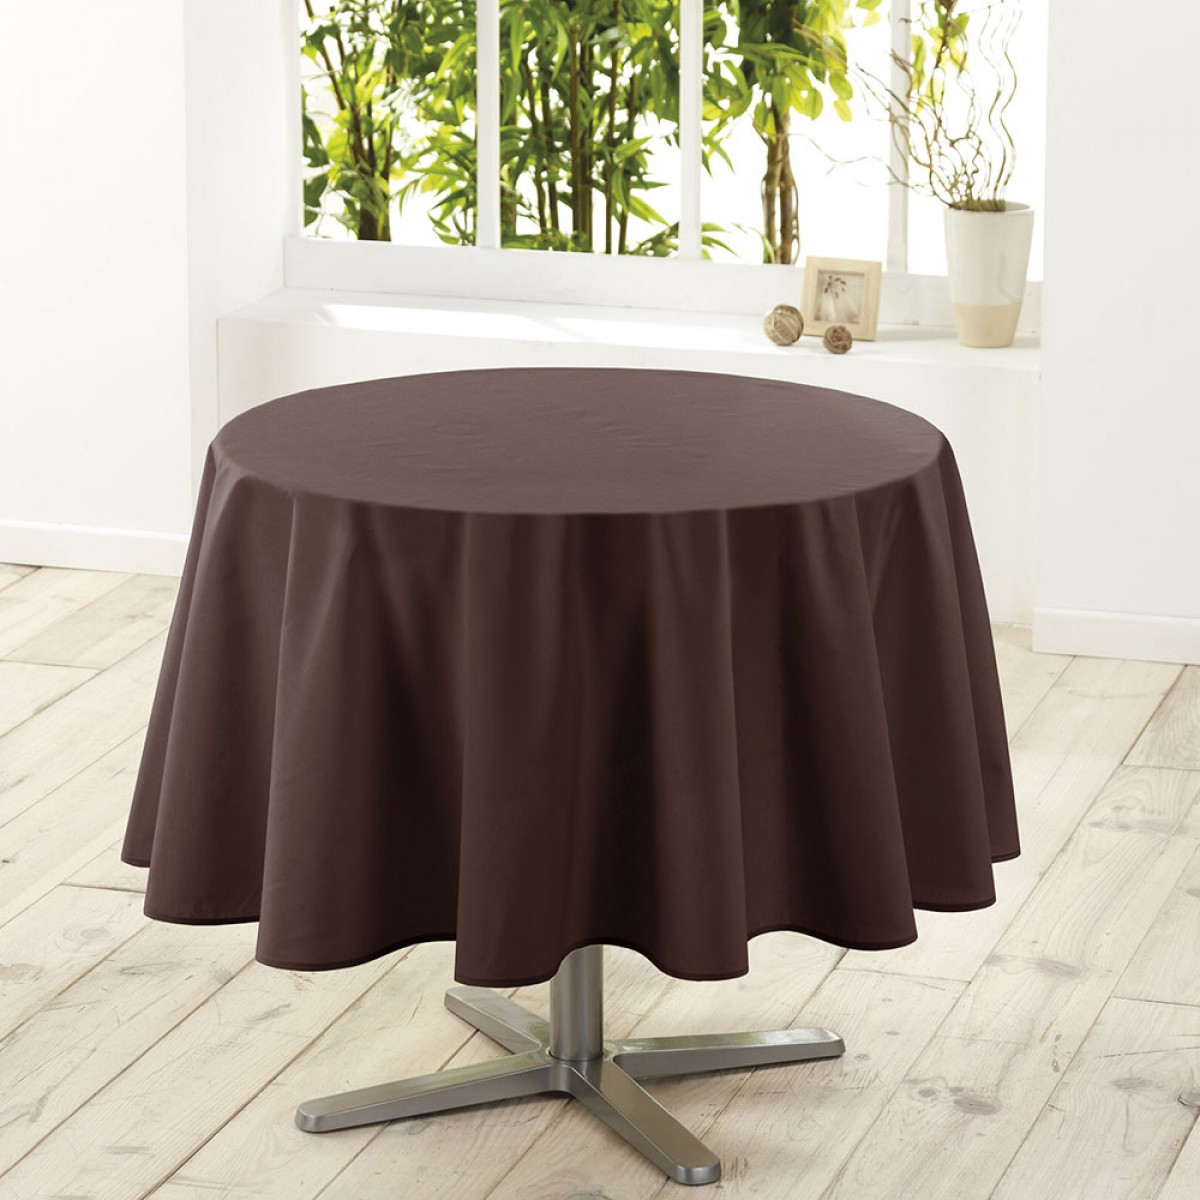 Nappe De Table Ronde Nappe De Table Ronde Ø180cm Essentiel Brun Antitache